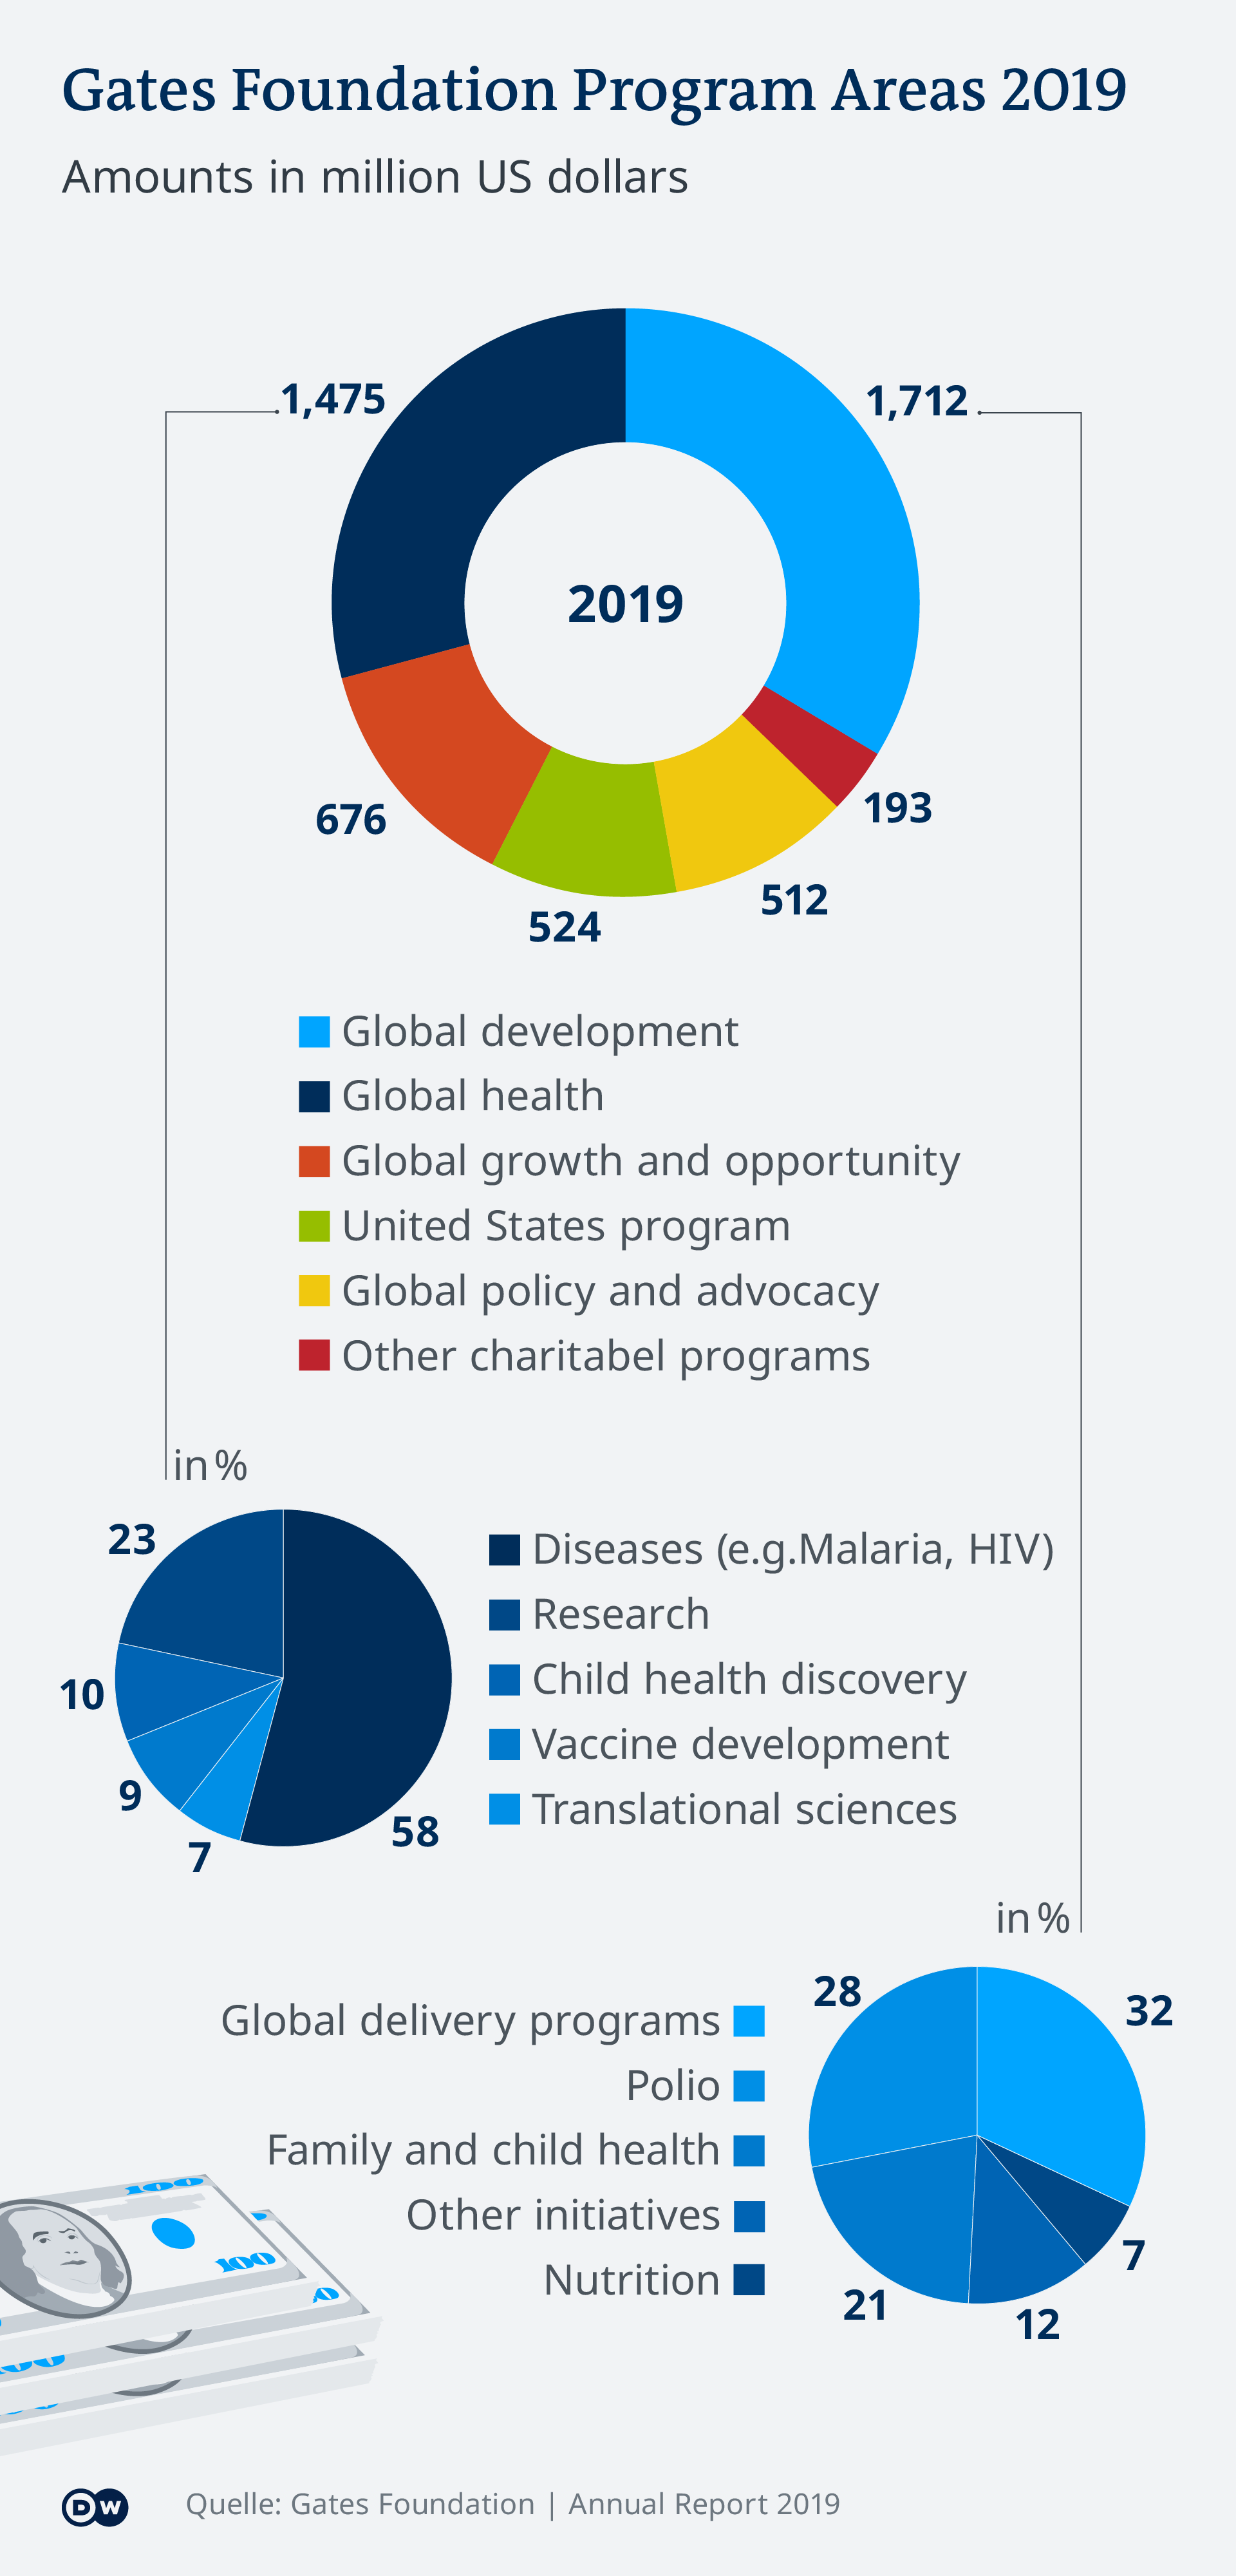 An infographic showing the main program areas of the Gates Foundation